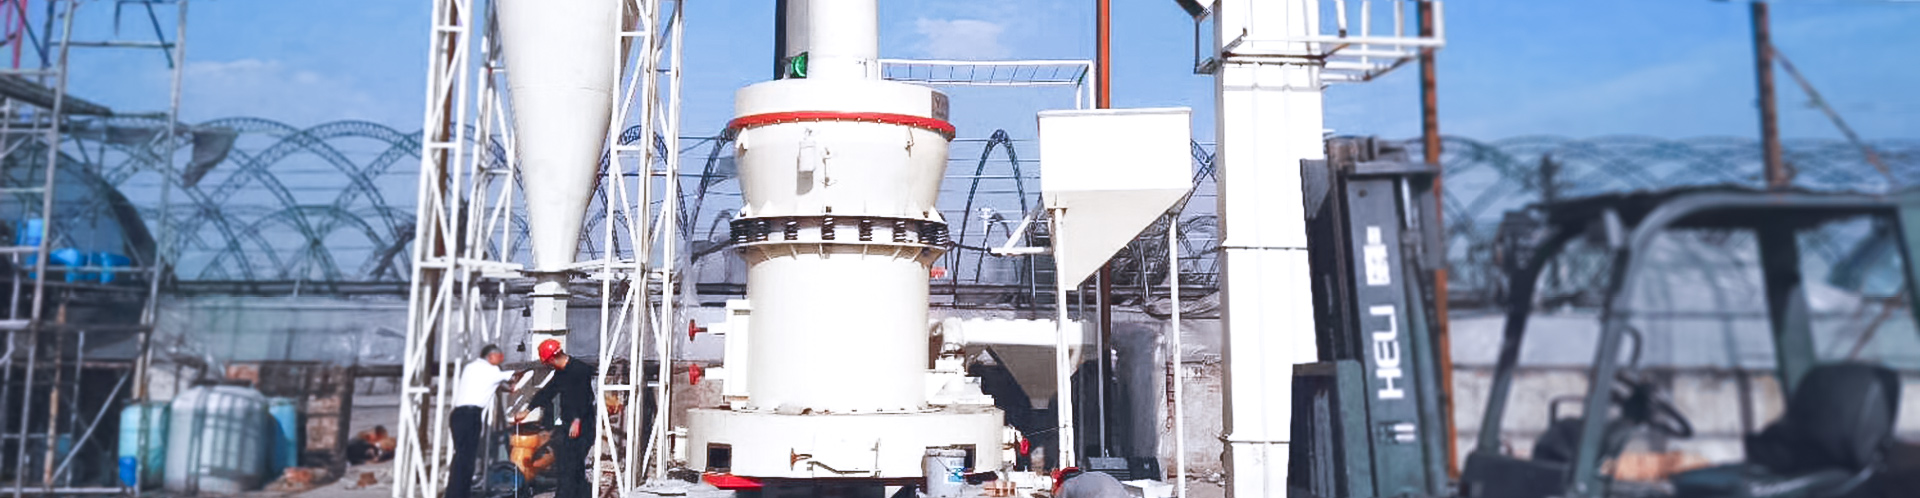 3 t/h limestone grinding powder production line in Zambia, Africa